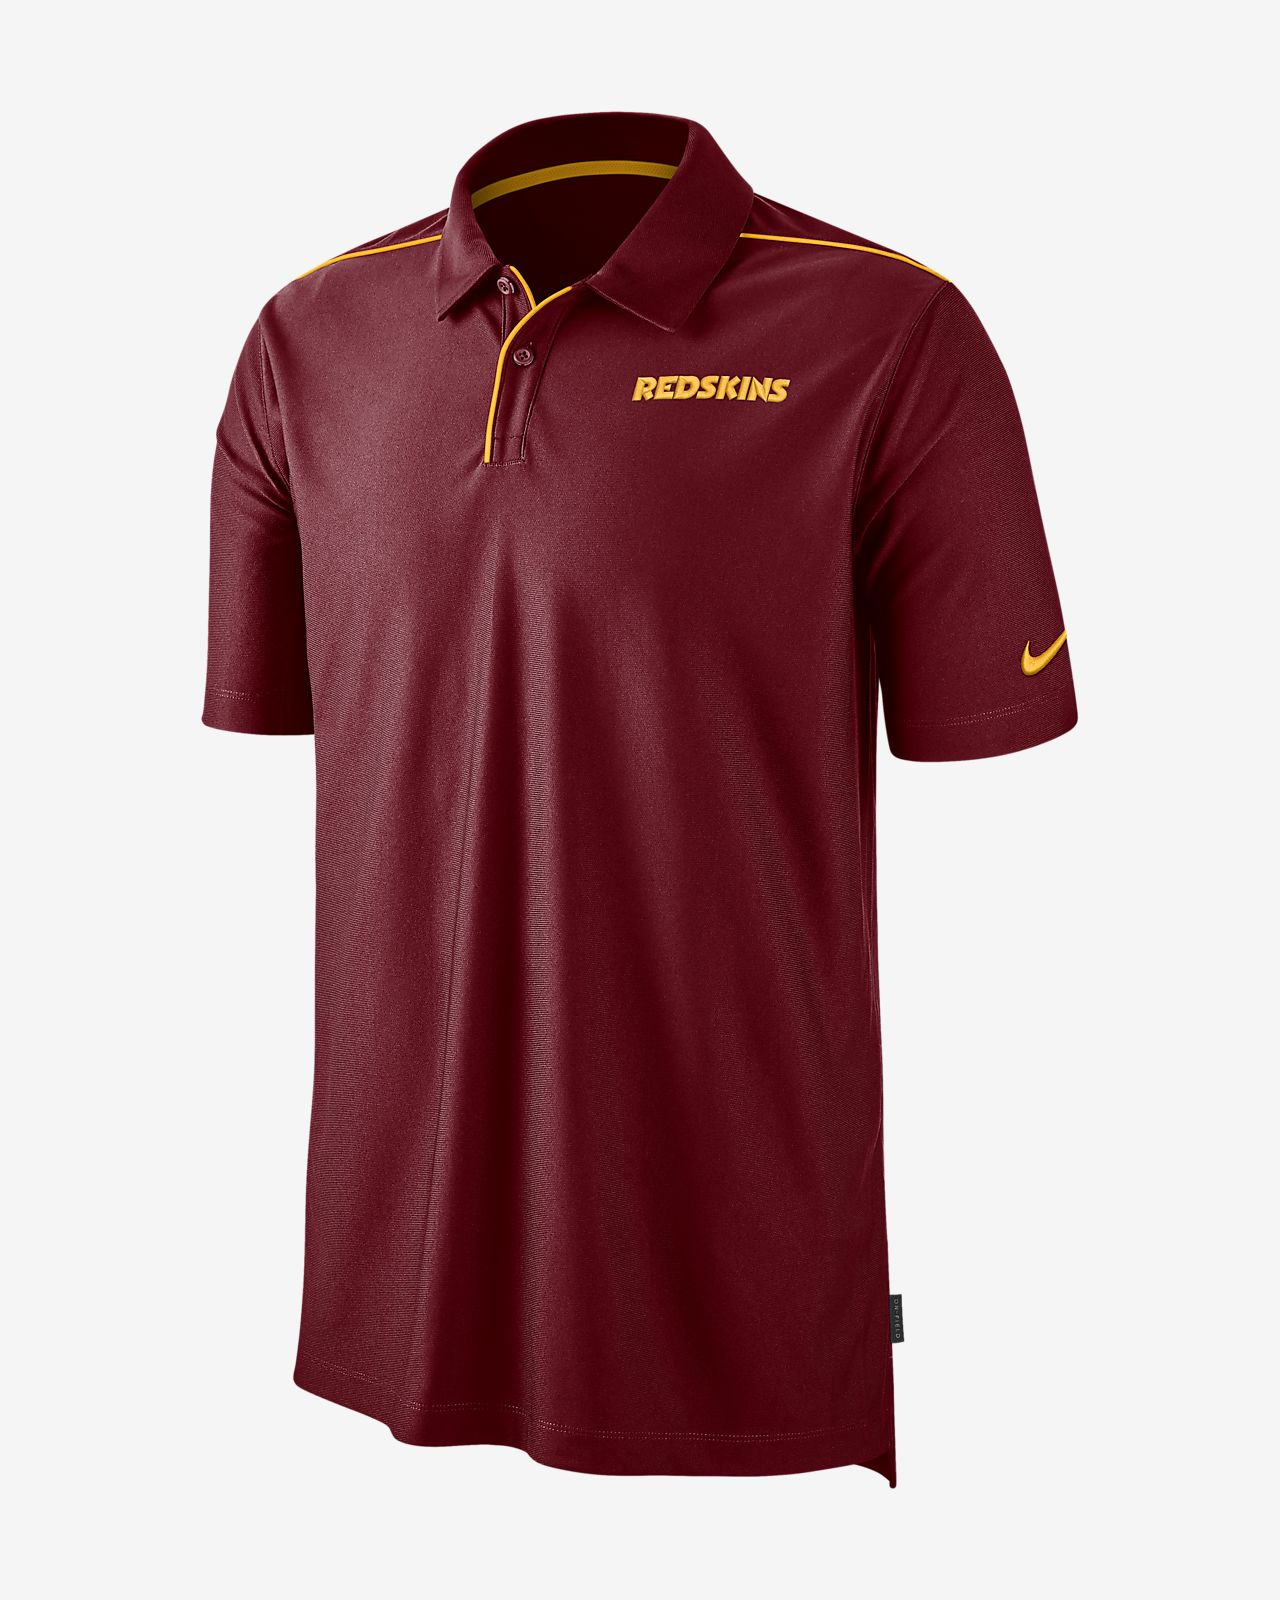 716f26fc Nike Dri-FIT Team Issue (NFL Redskins) Men's Polo